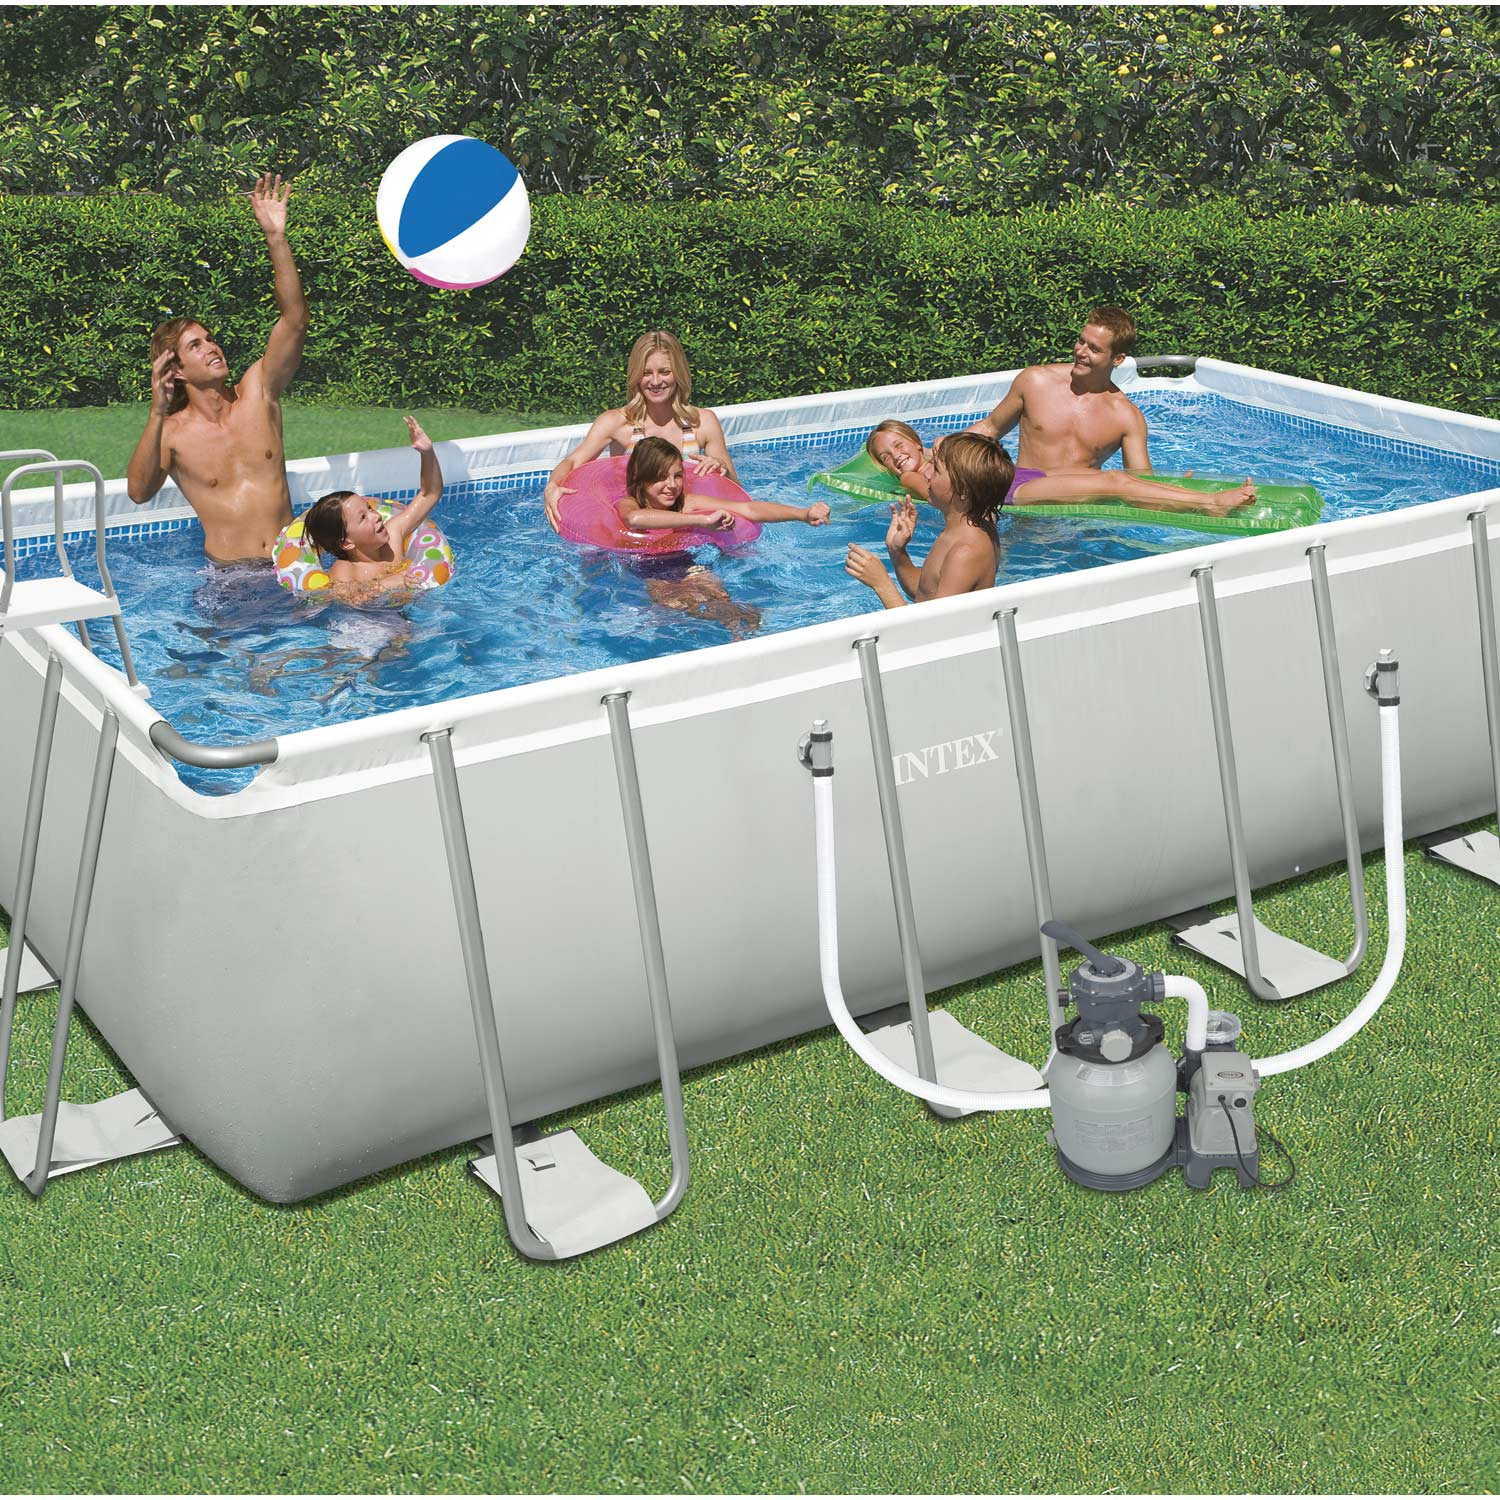 Piscine hors sol autoportante tubulaire ultra silver intex for Piscine hors sol imposable